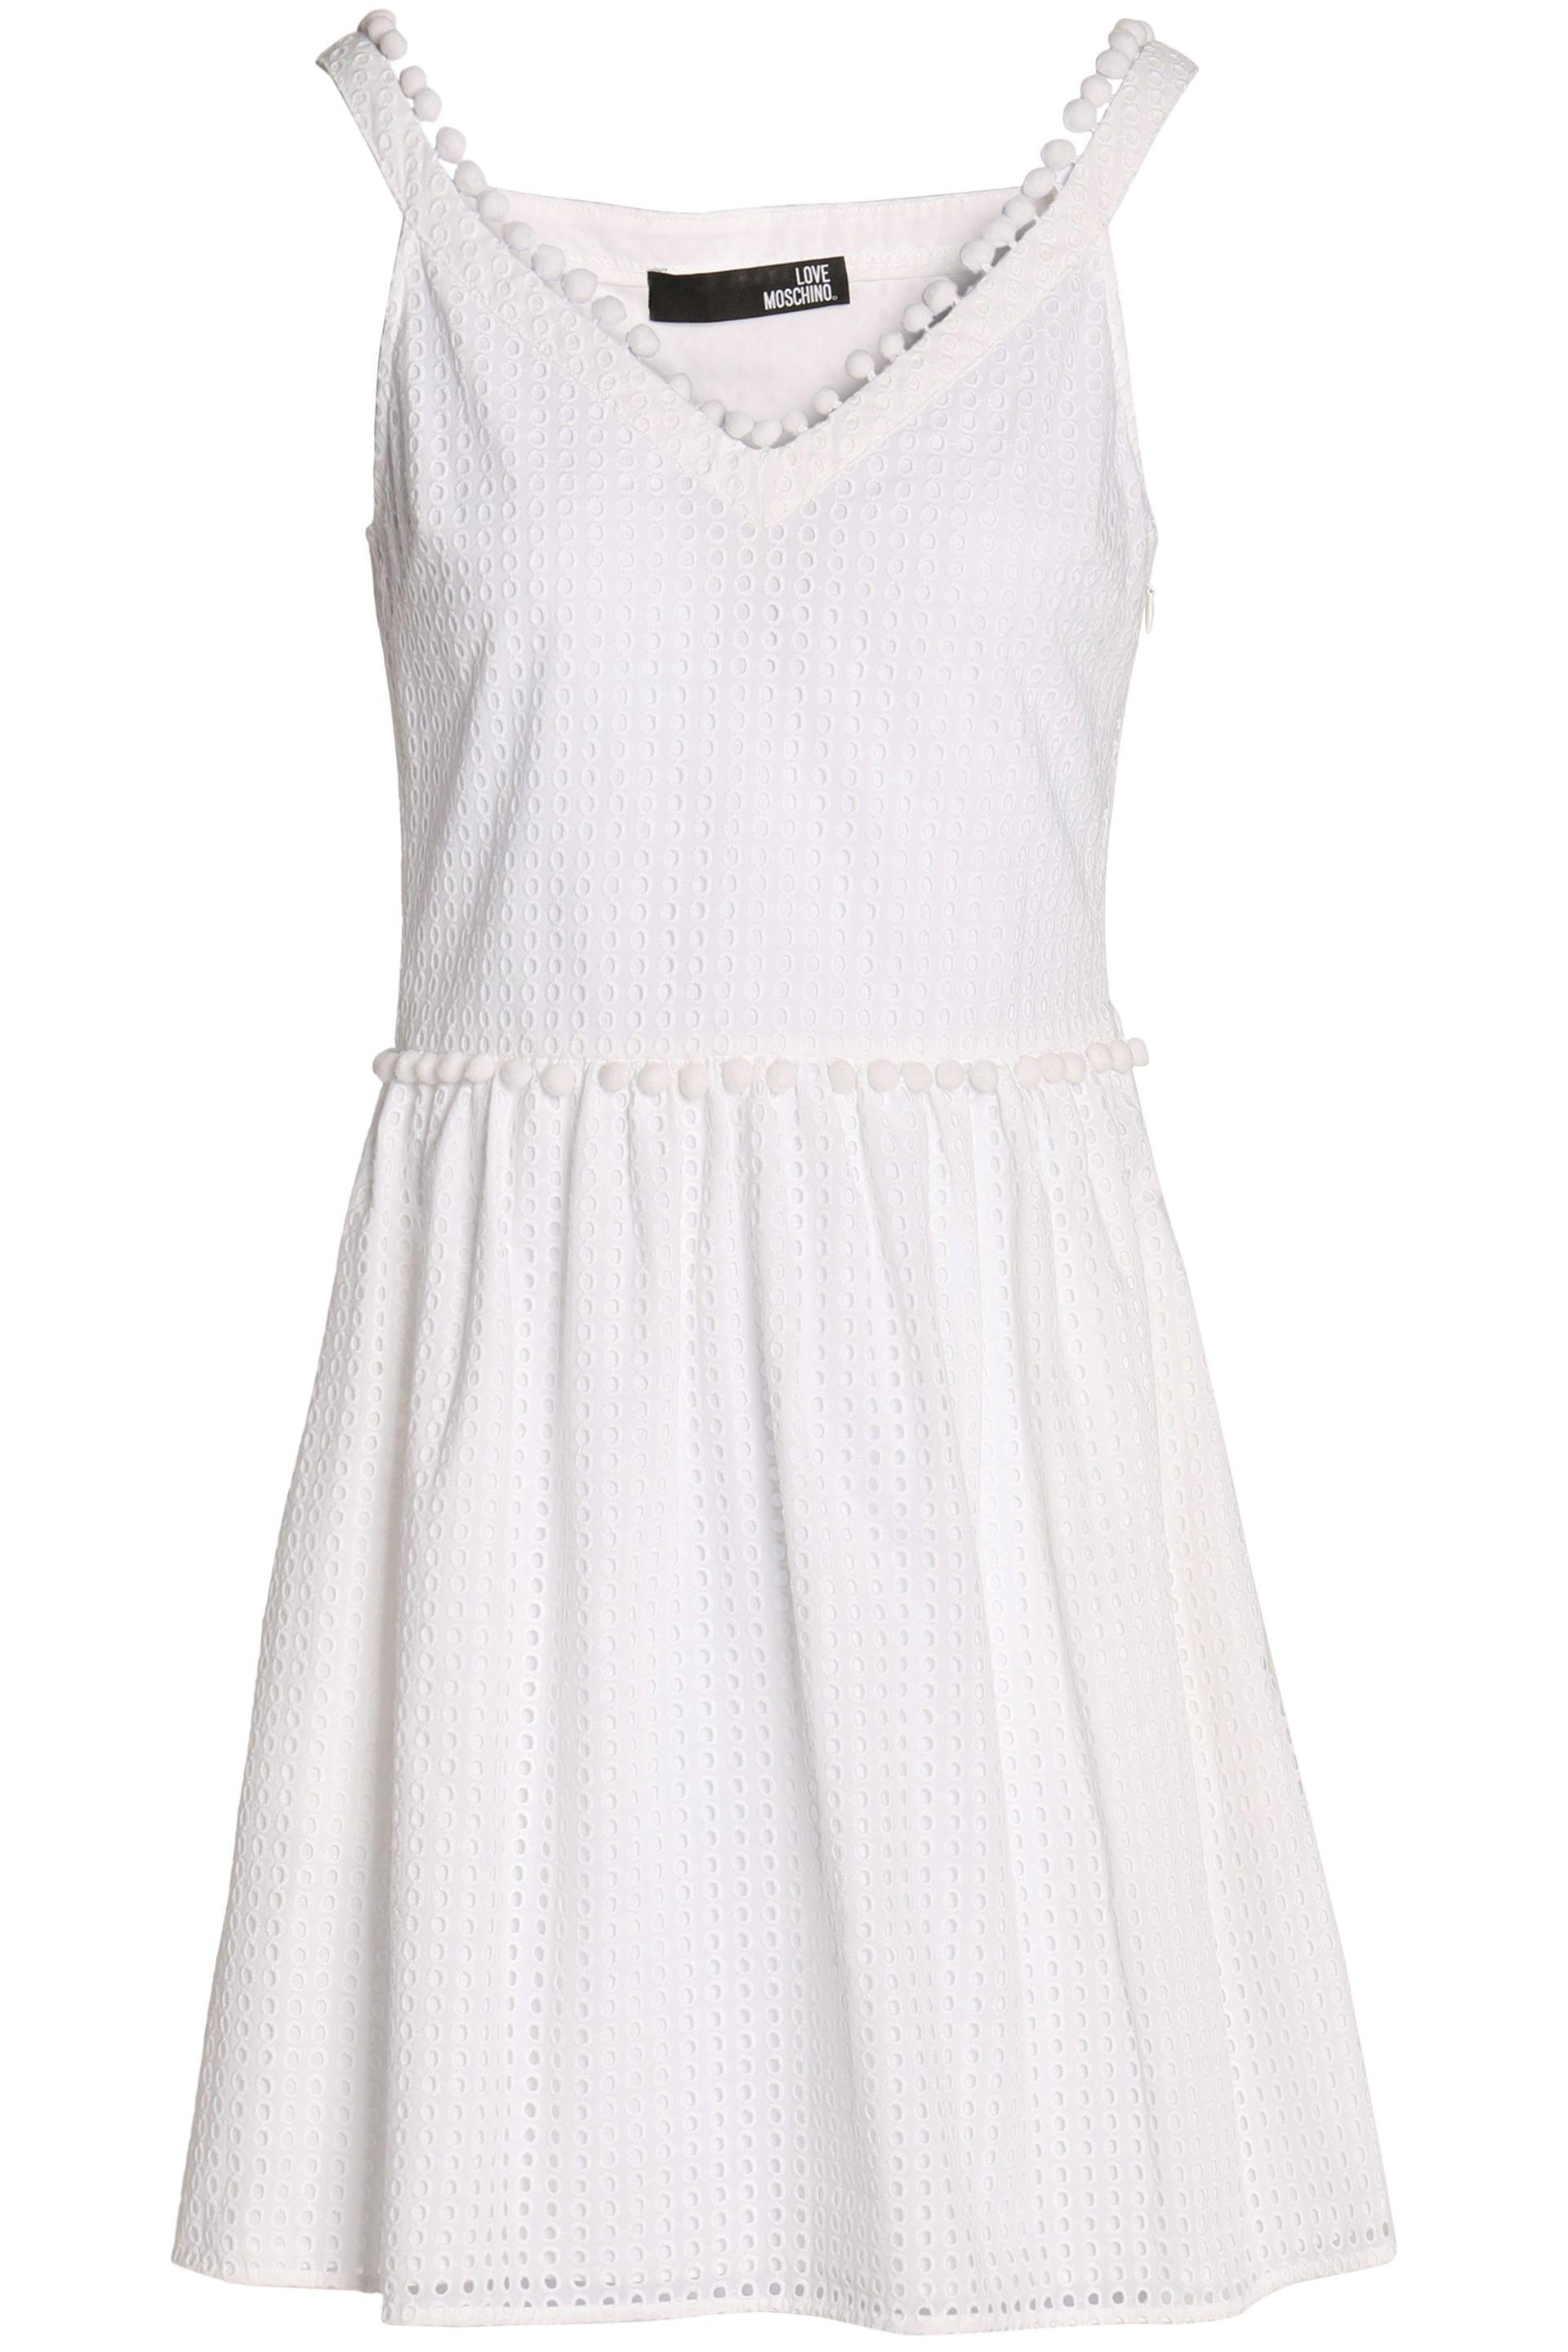 Love Moschino Woman Pompom-embellished Broderie Anglaise Cotton Mini Dress White Size 48 Love Moschino